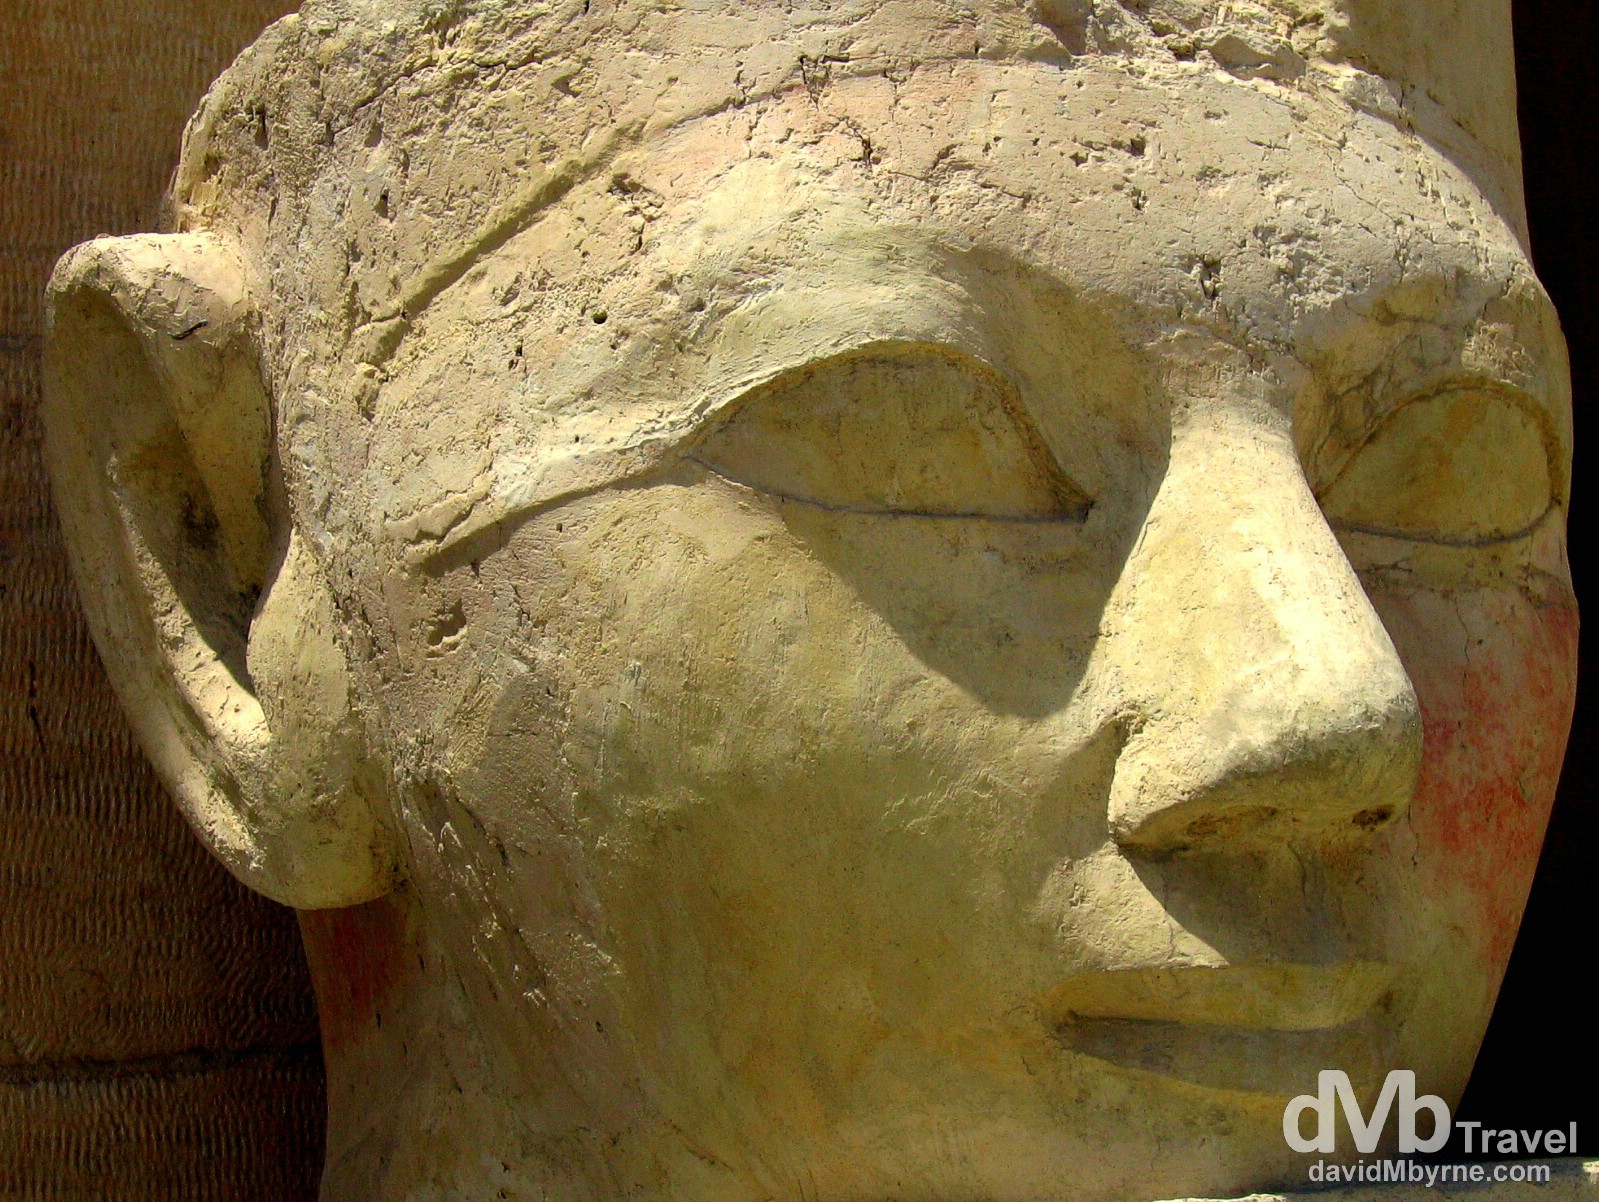 A statue head resembling Hatshepsut in The Funerary Temple of Hatshepsut, West bank of the Nile, Luxor, Egypt. April 12, 2008.